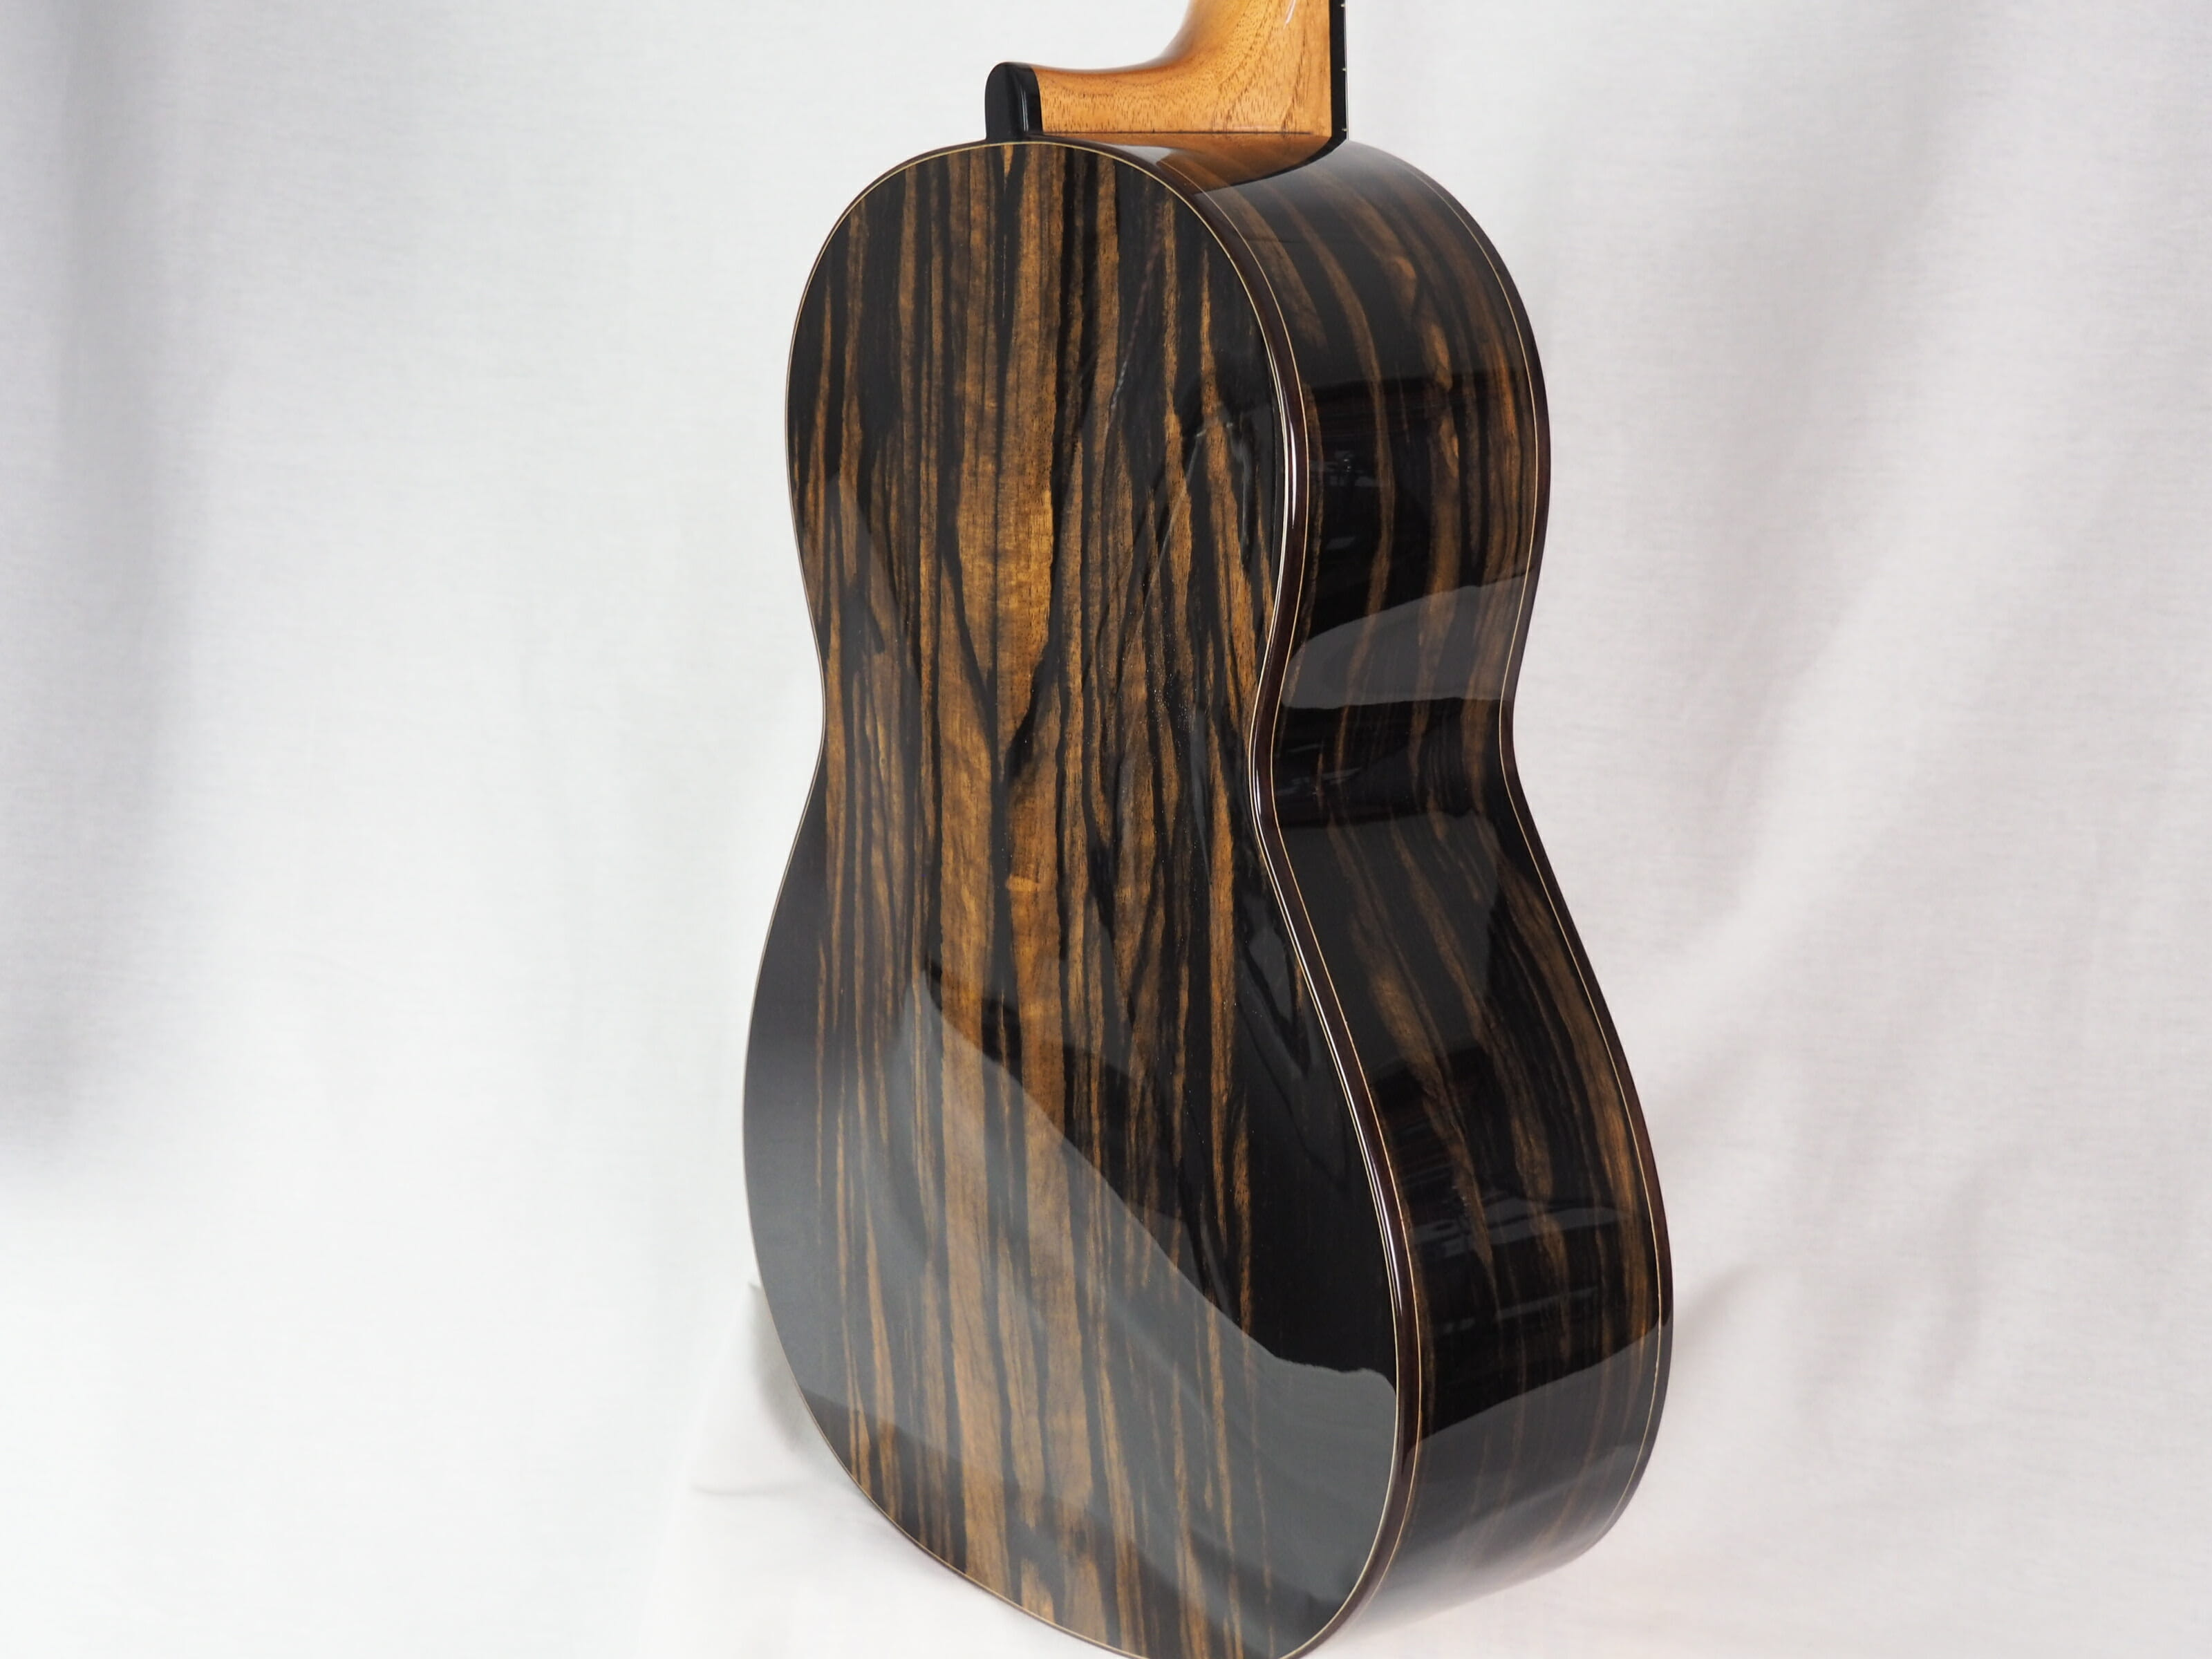 Michael O'Leary luthier guitare classique 19OLE237-04